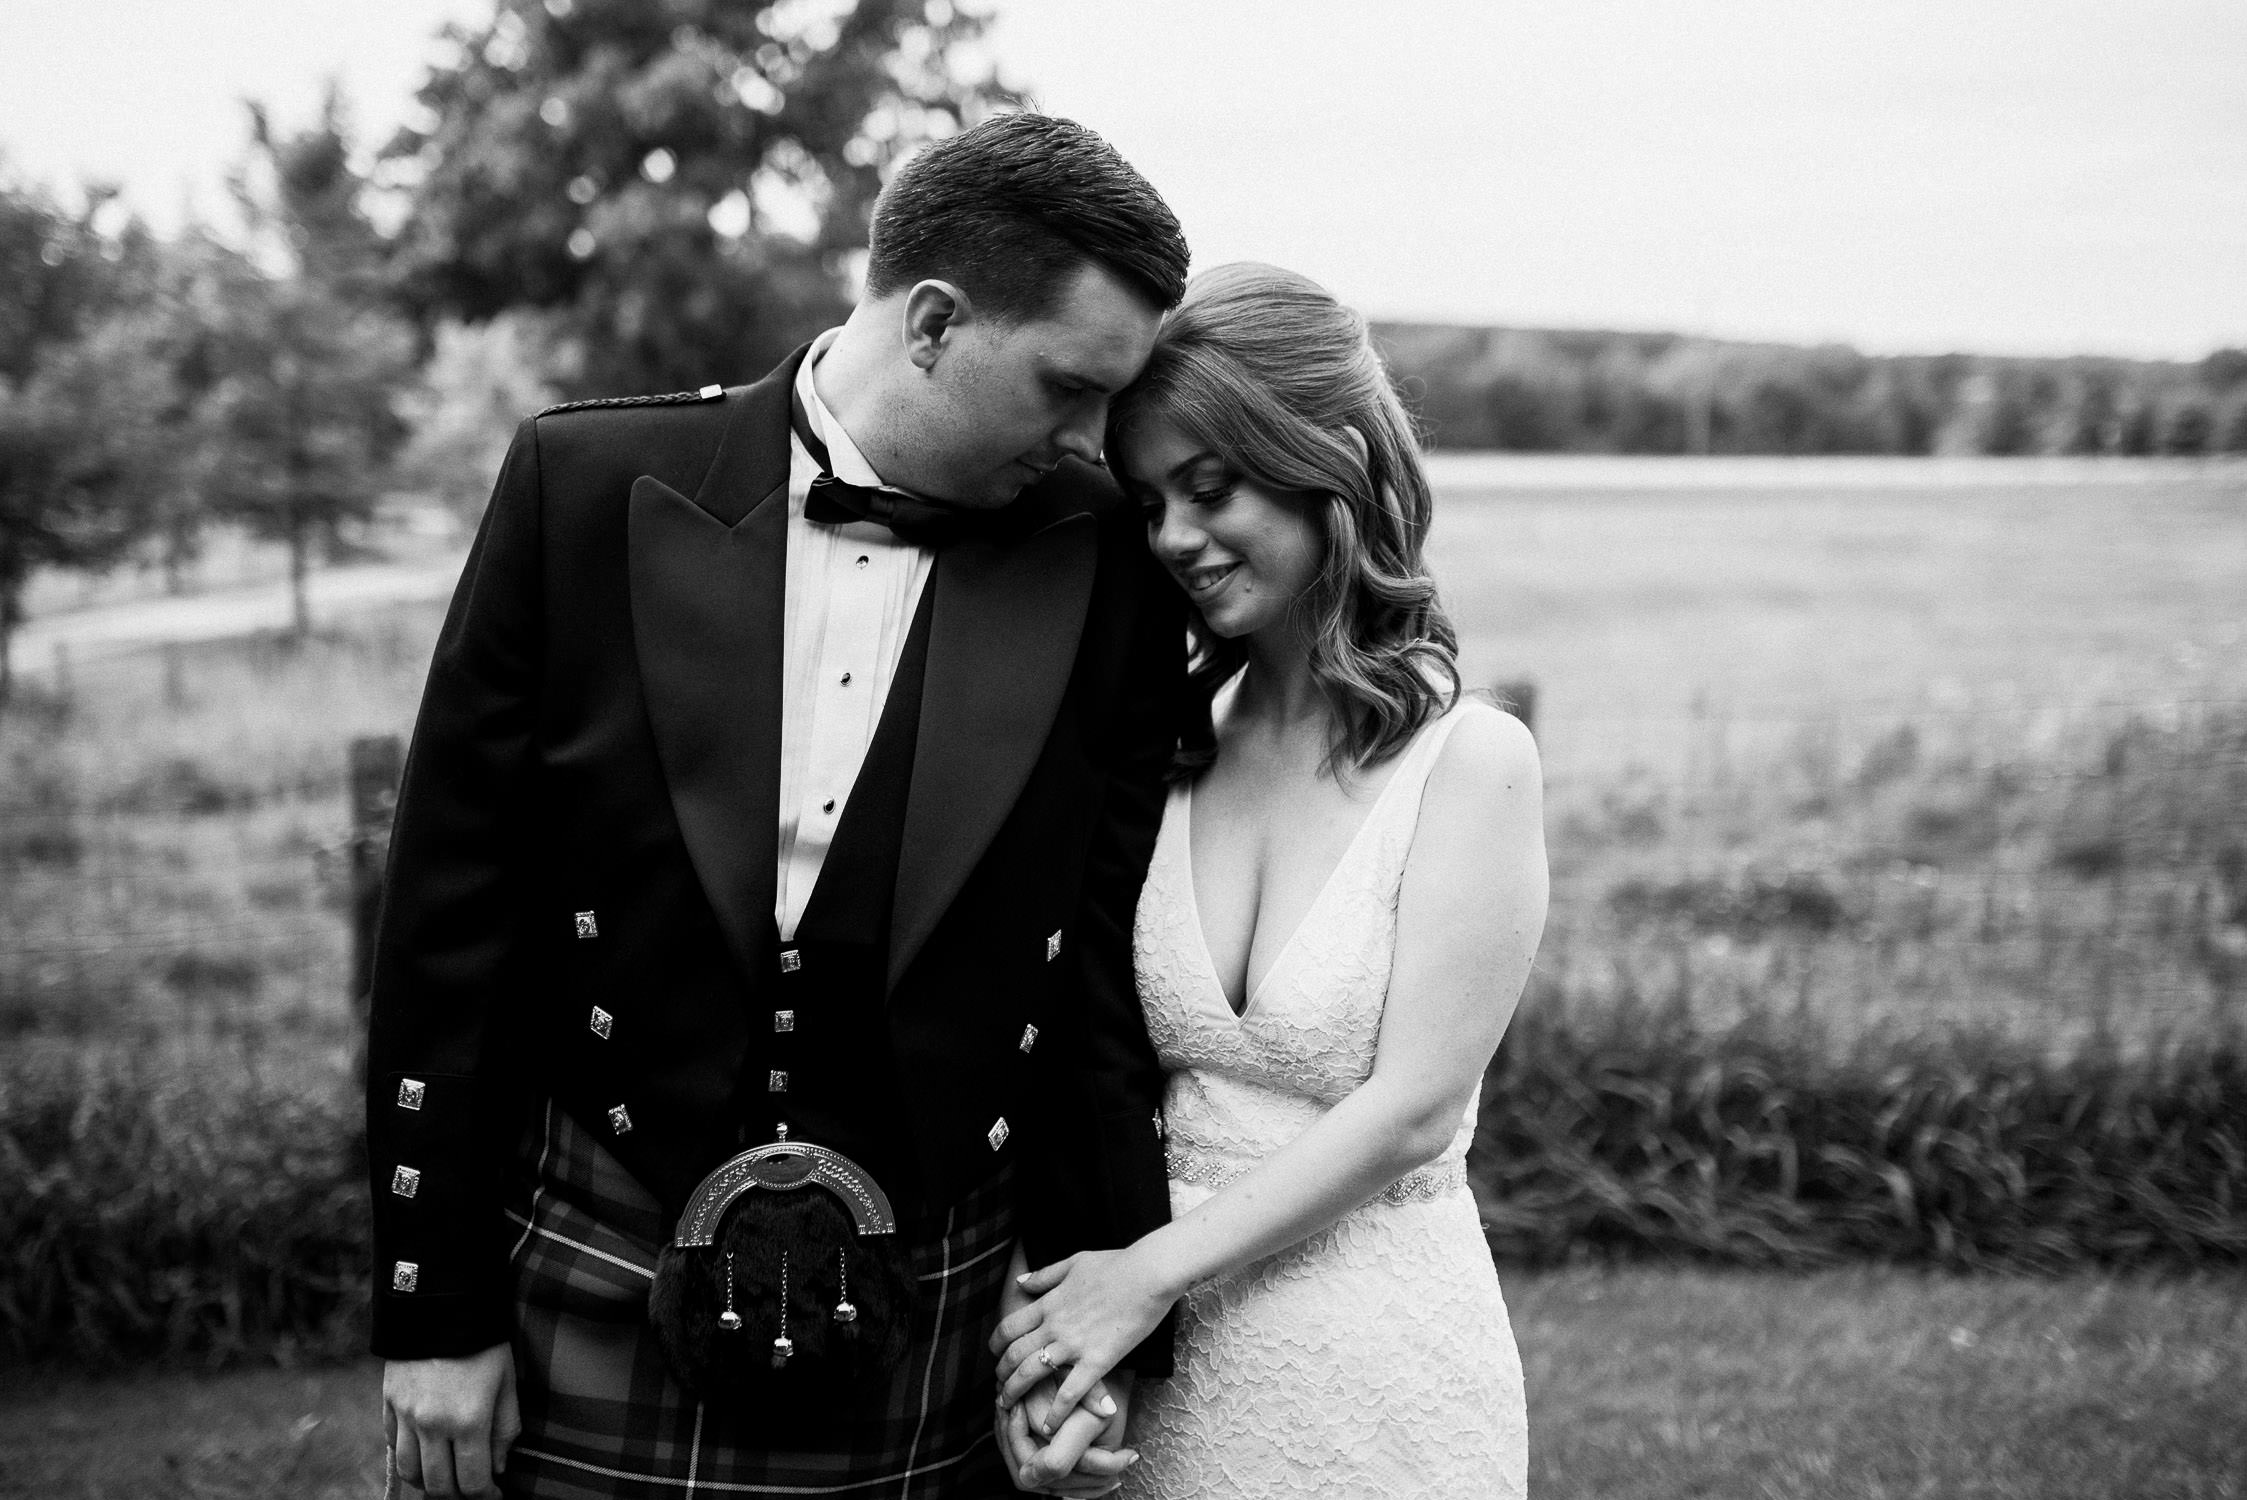 Black and white portrait of the bride and groom embracing before their wedding ceremony at Cambium Farm.